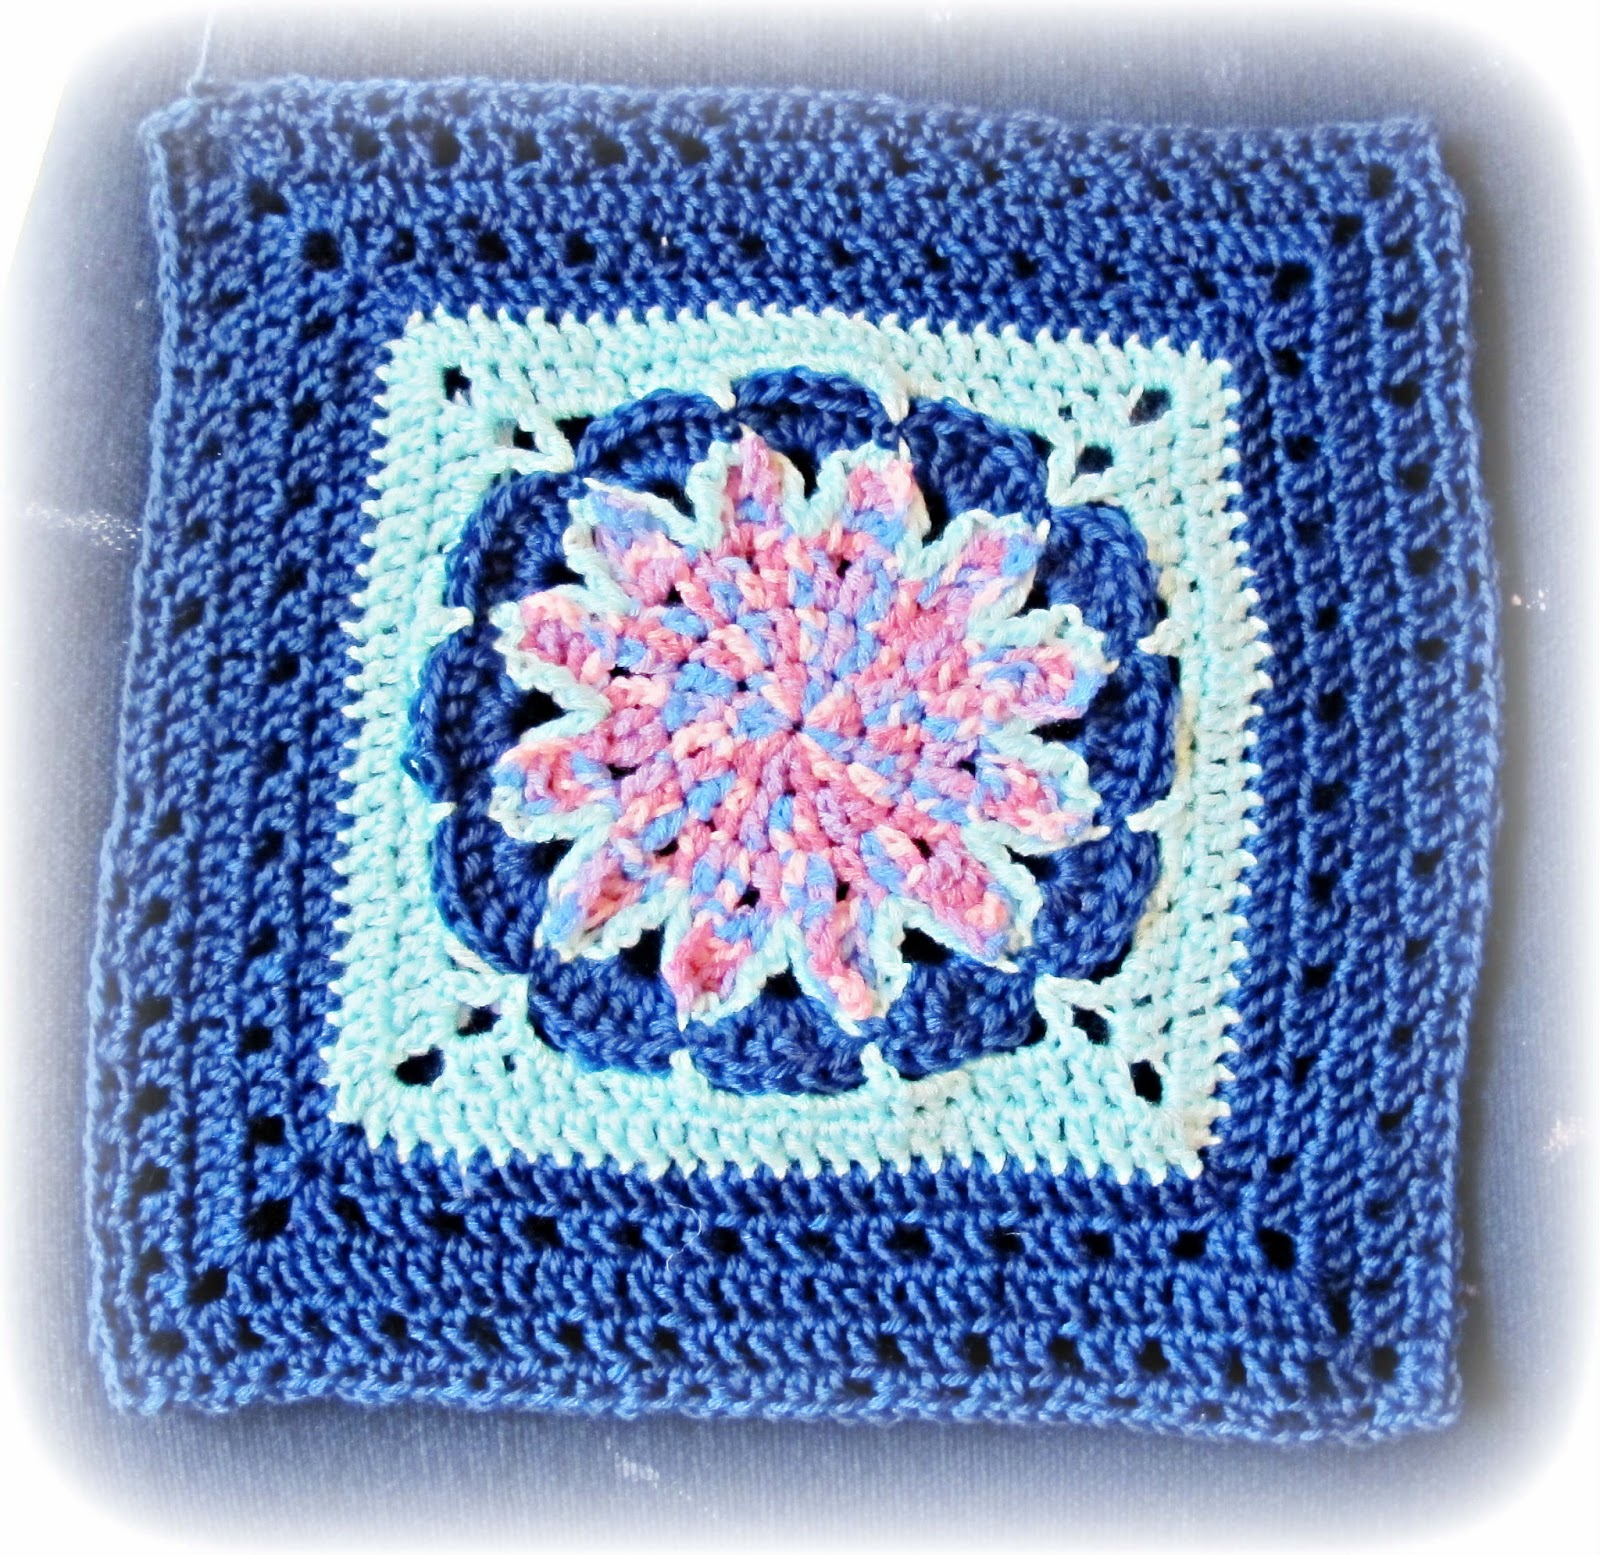 image smoothfox starburst square 12 inch crochet